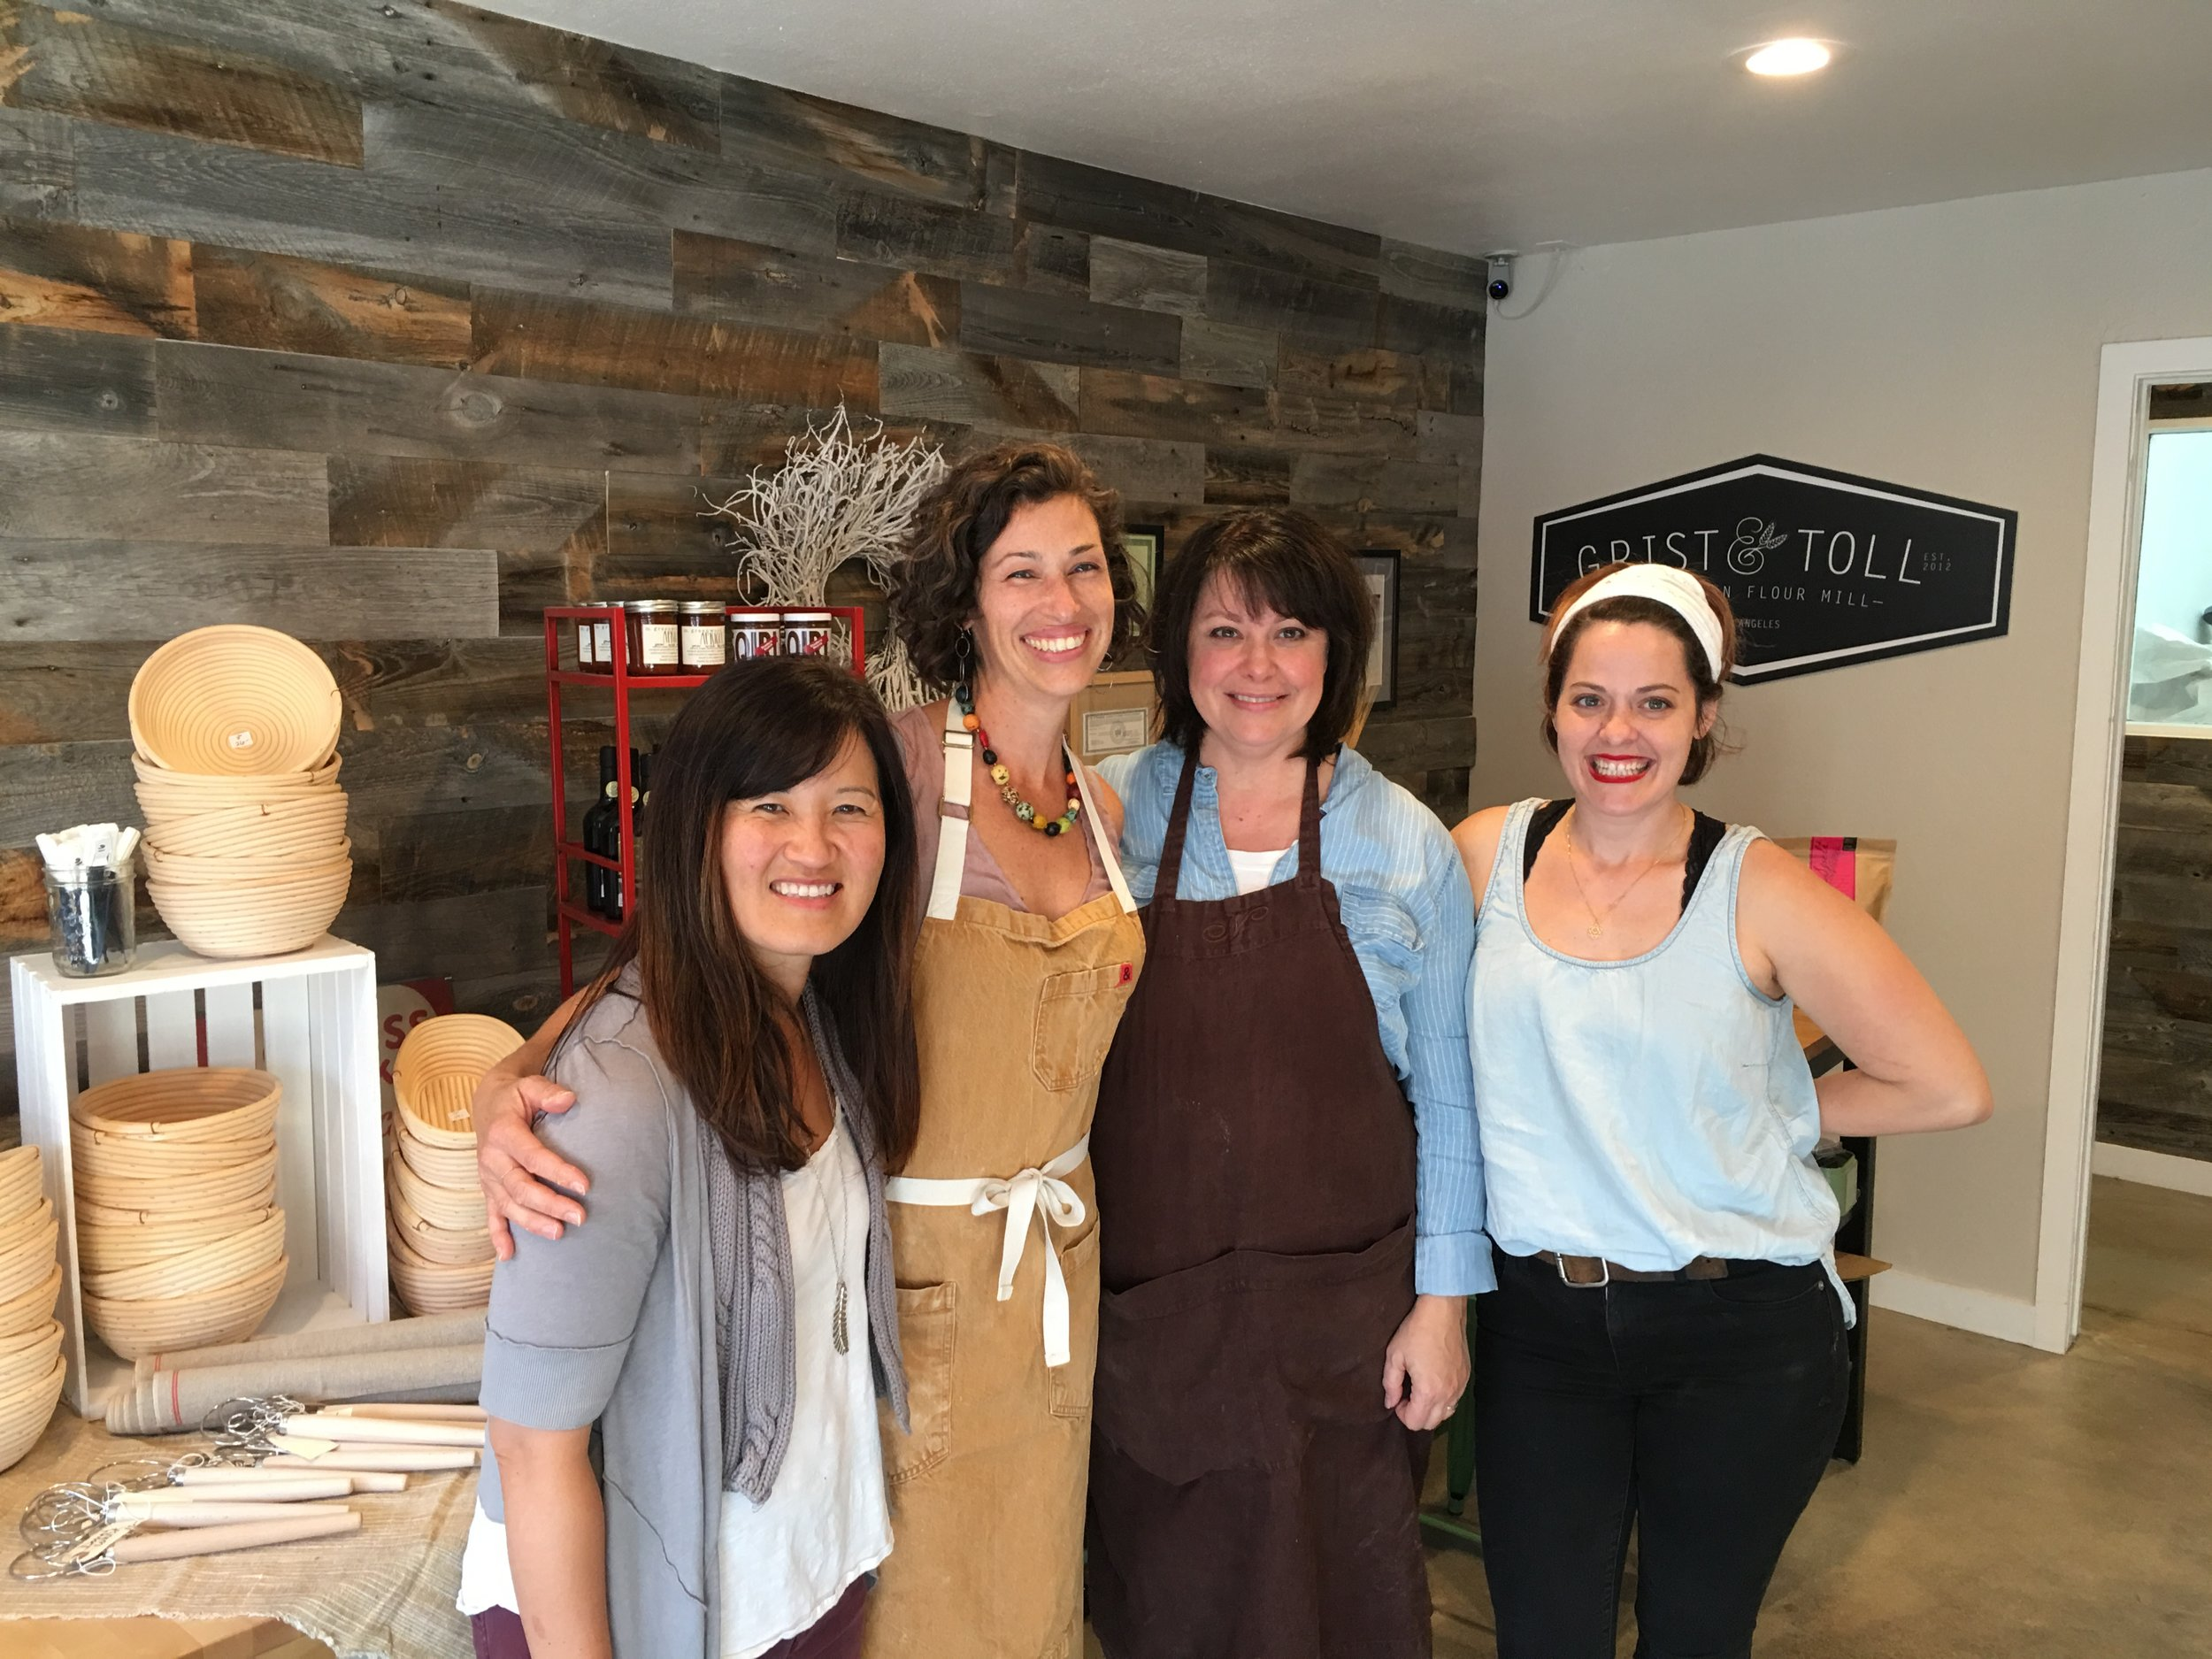 The future is female. L to R:Min Kim of Biodynamic Wellness, author and baker Sarah Owens, Nan Kohler of Grist & Toll, Rose Lawrence of Redbread.